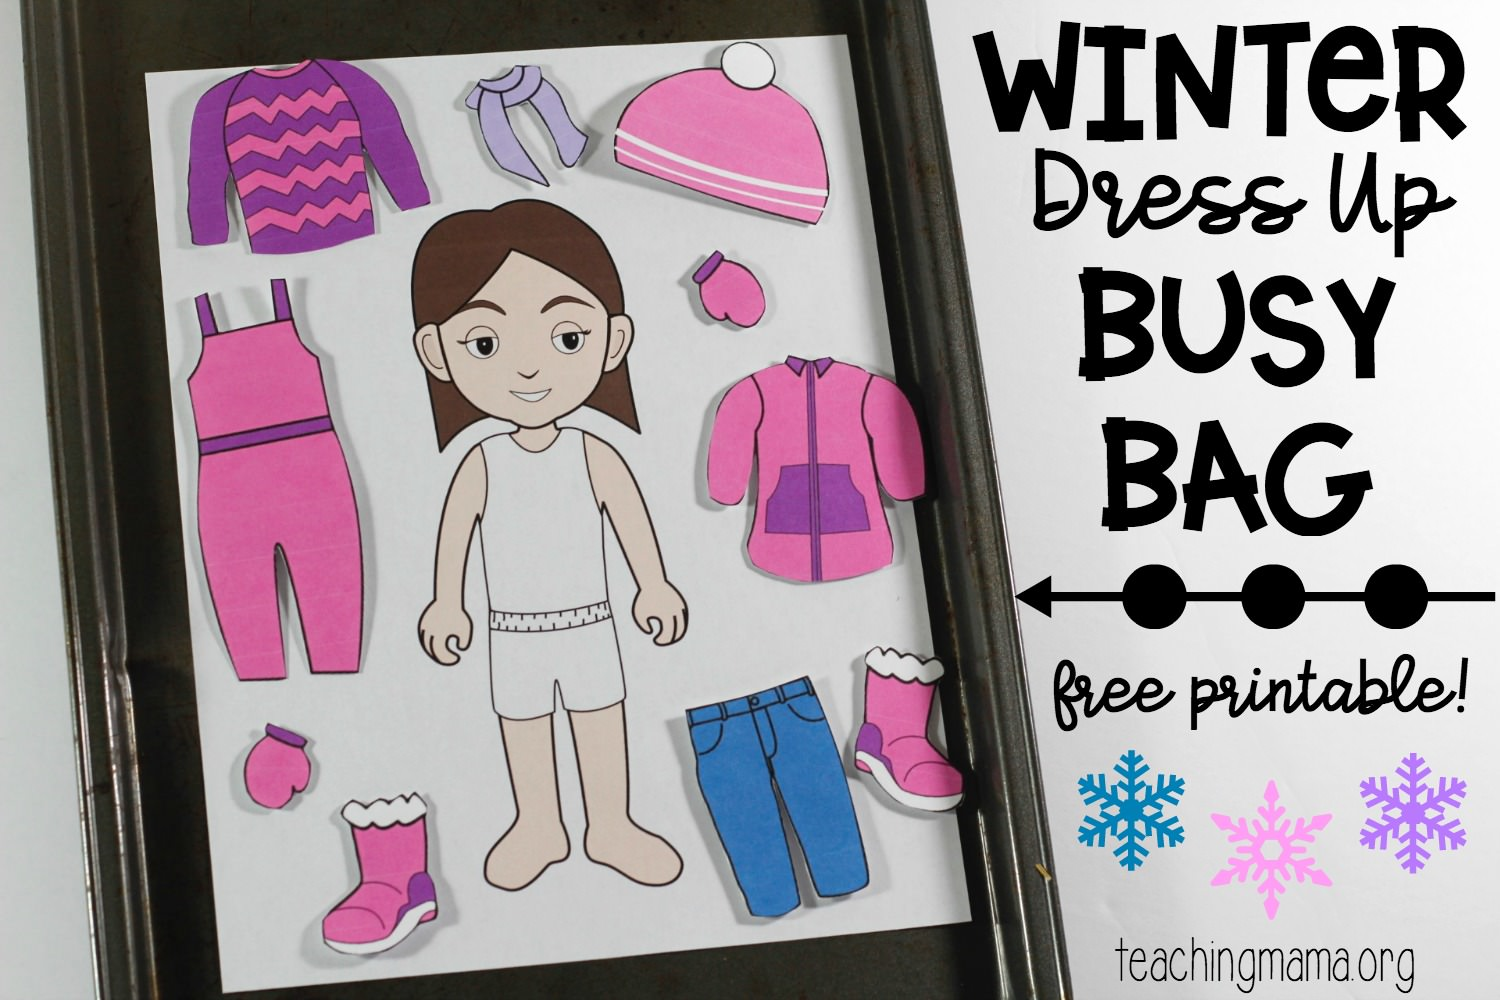 winter dress up busy bag